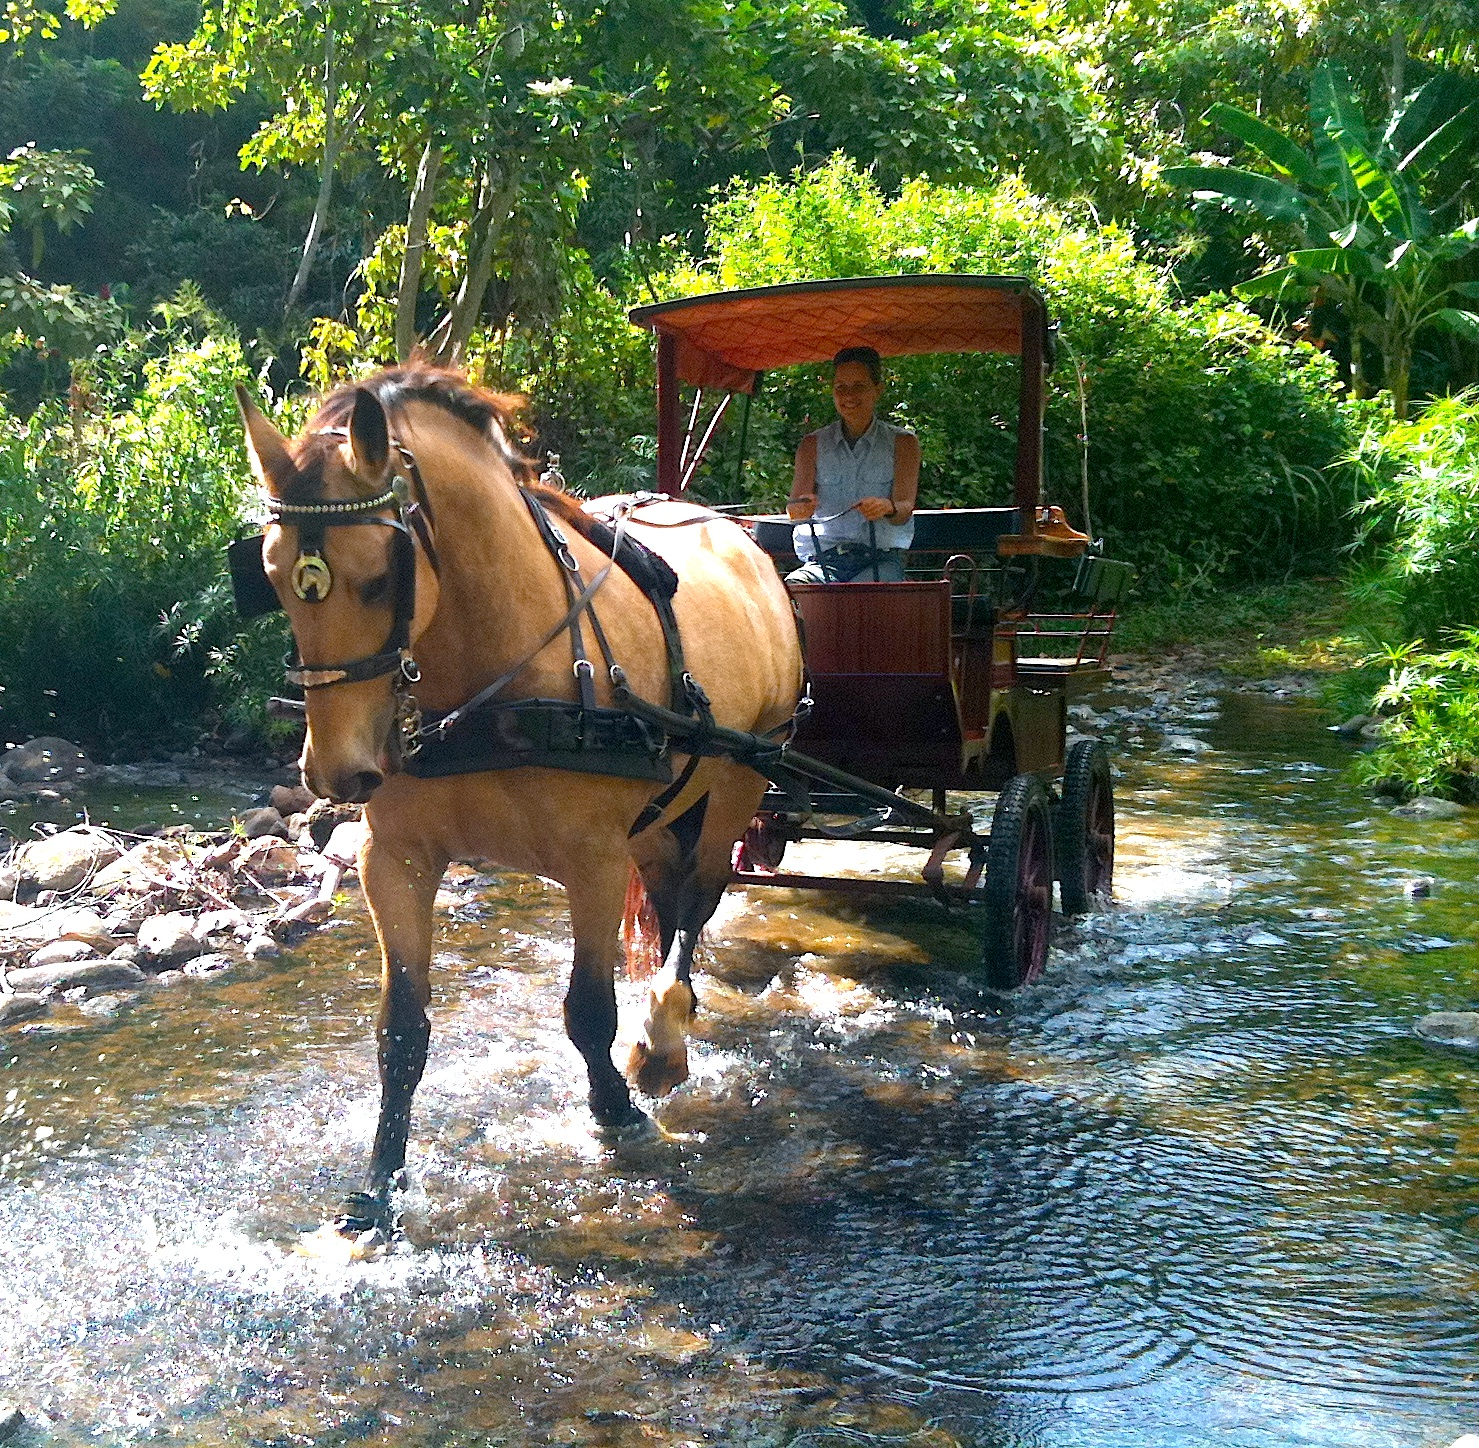 A horse-drawn carriage is living history celebrating Kauai's royal heritage   and   rural character.      Taking      us back to a bygone era of Hawaiian Royalty , take a drive with  our AMBASSADOR OF ALOHA,     the horse...     feel the spirit that horse power brings.